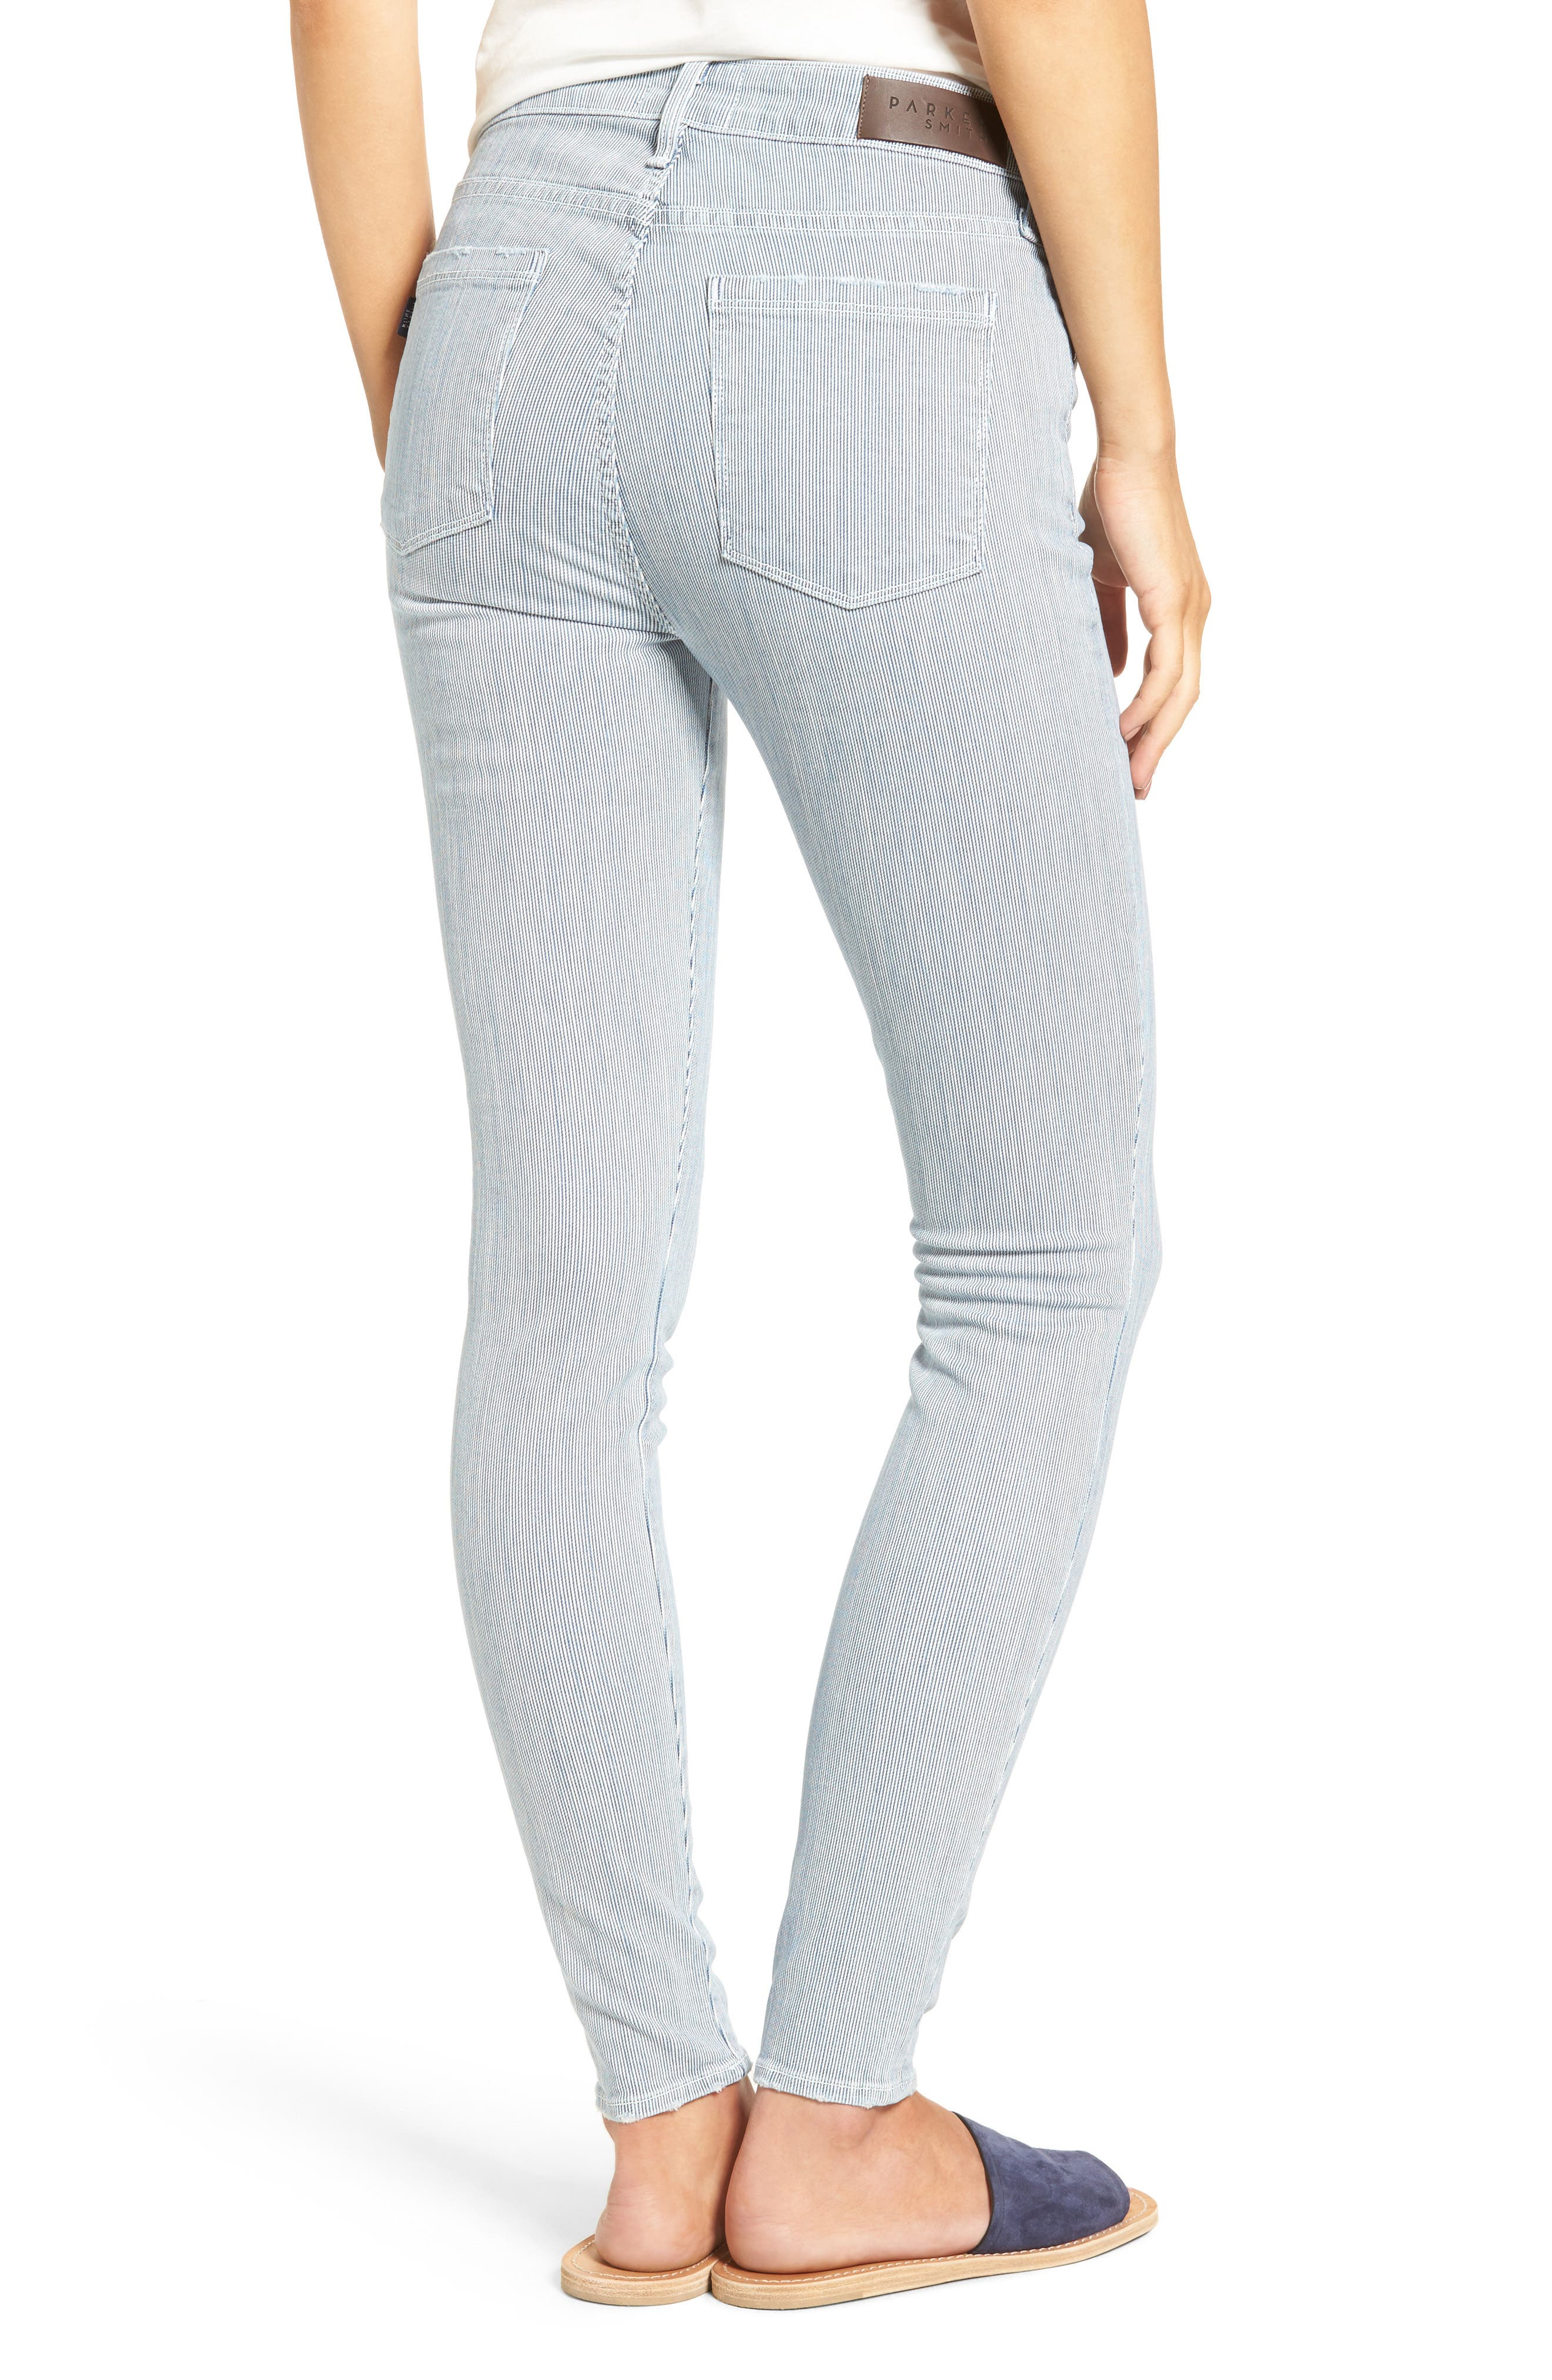 Alternate Image 2  - PARKER SMITH Ava Railroad Stripe Skinny Jeans (Engineer)